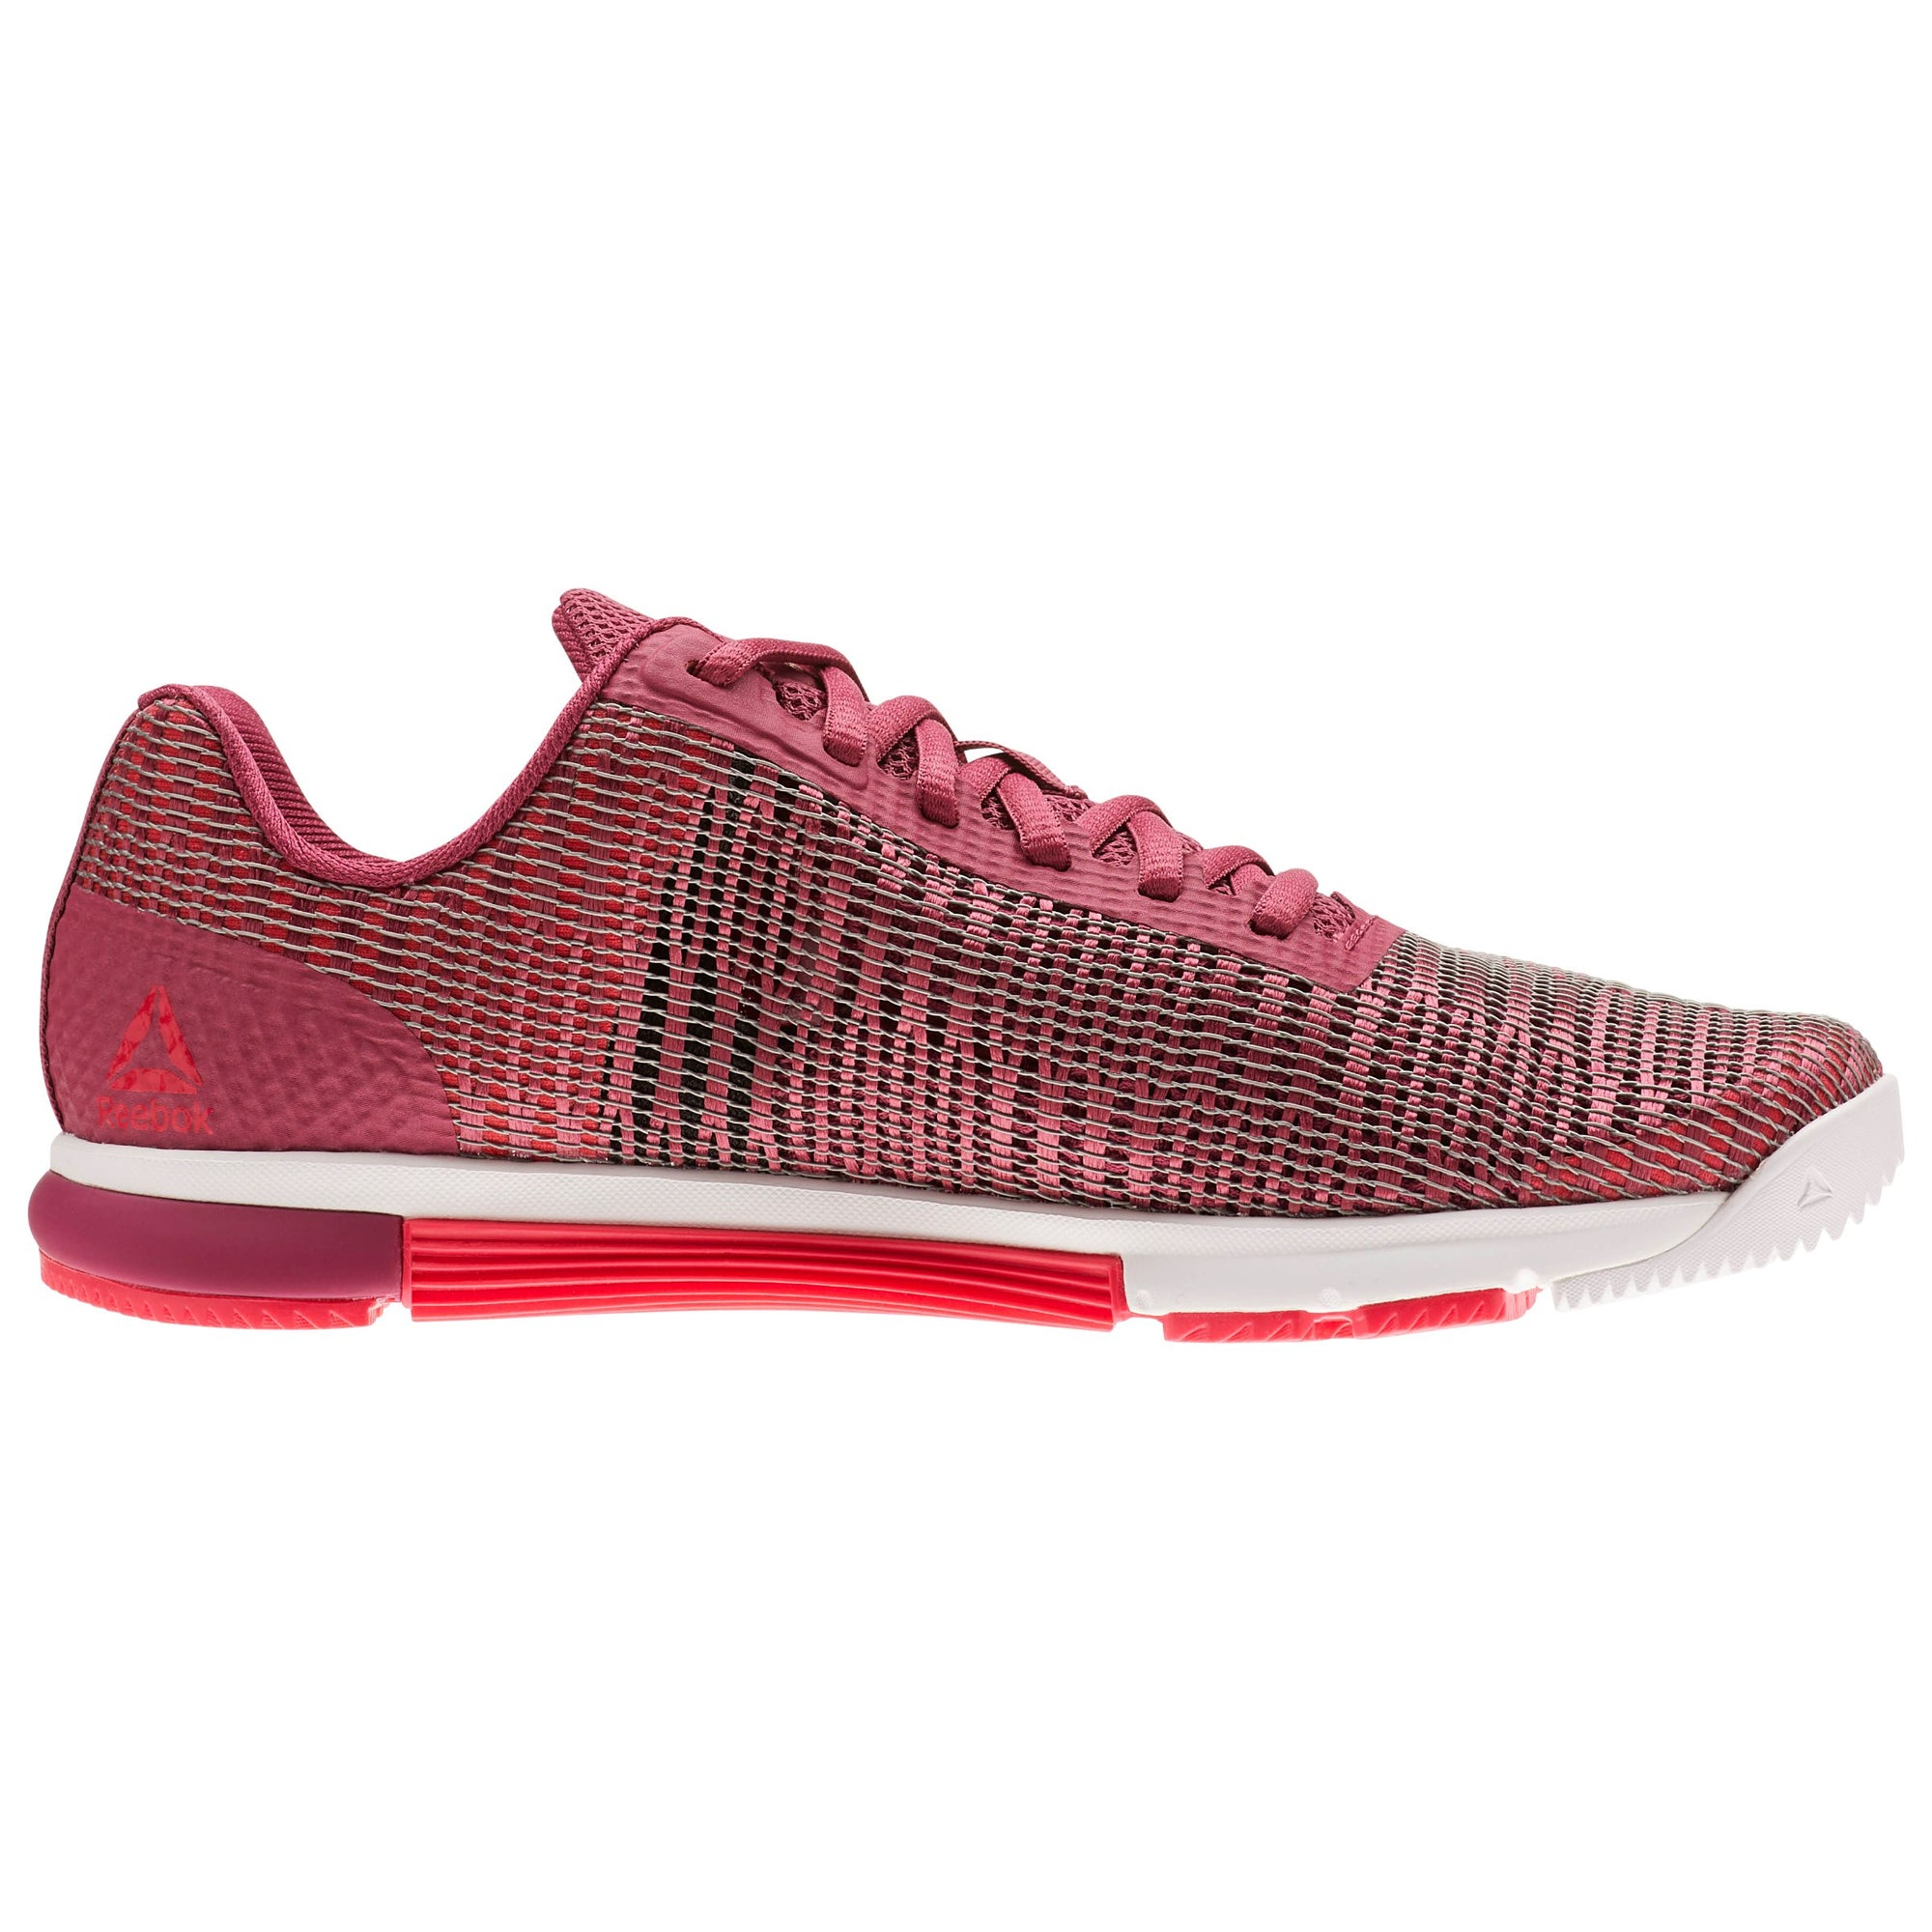 b922f57ef06 Buy Reebok Women Speed Flexweave Training Shoes